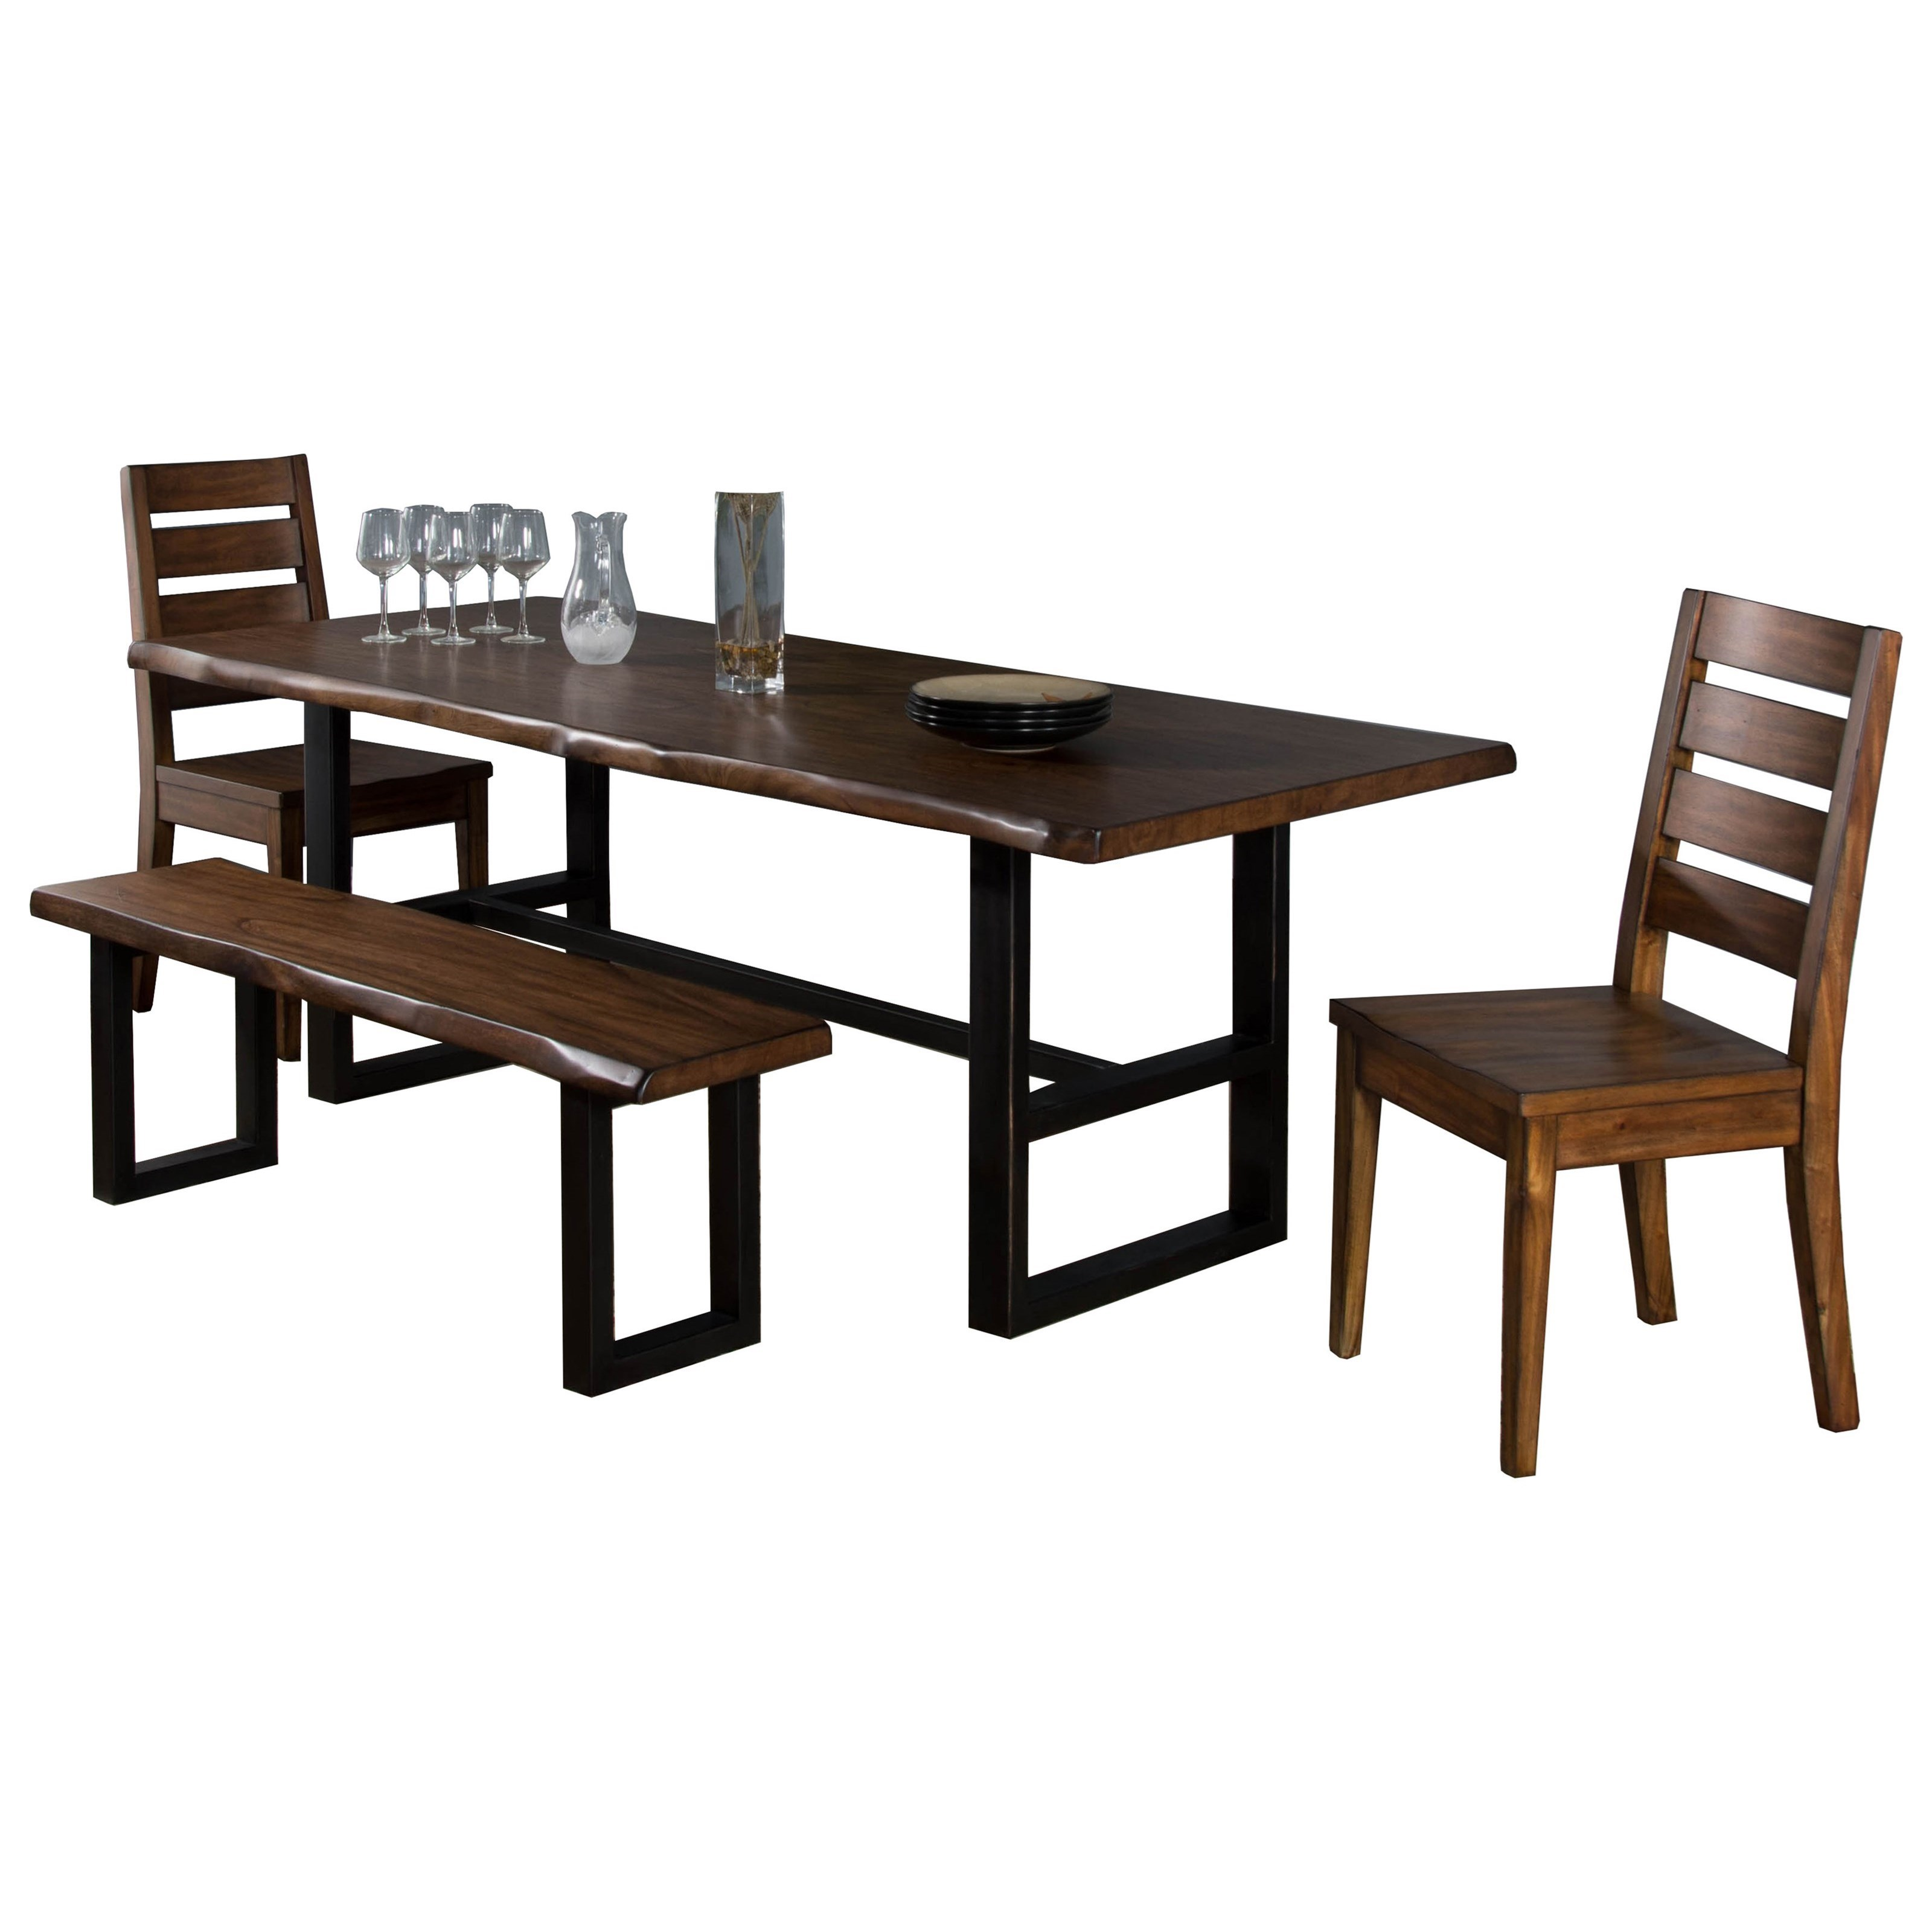 Sunny Designs Cresent Hill 4-Piece Live Edge Table Set with Bench - Item Number: 1031NM+2x1512+1441